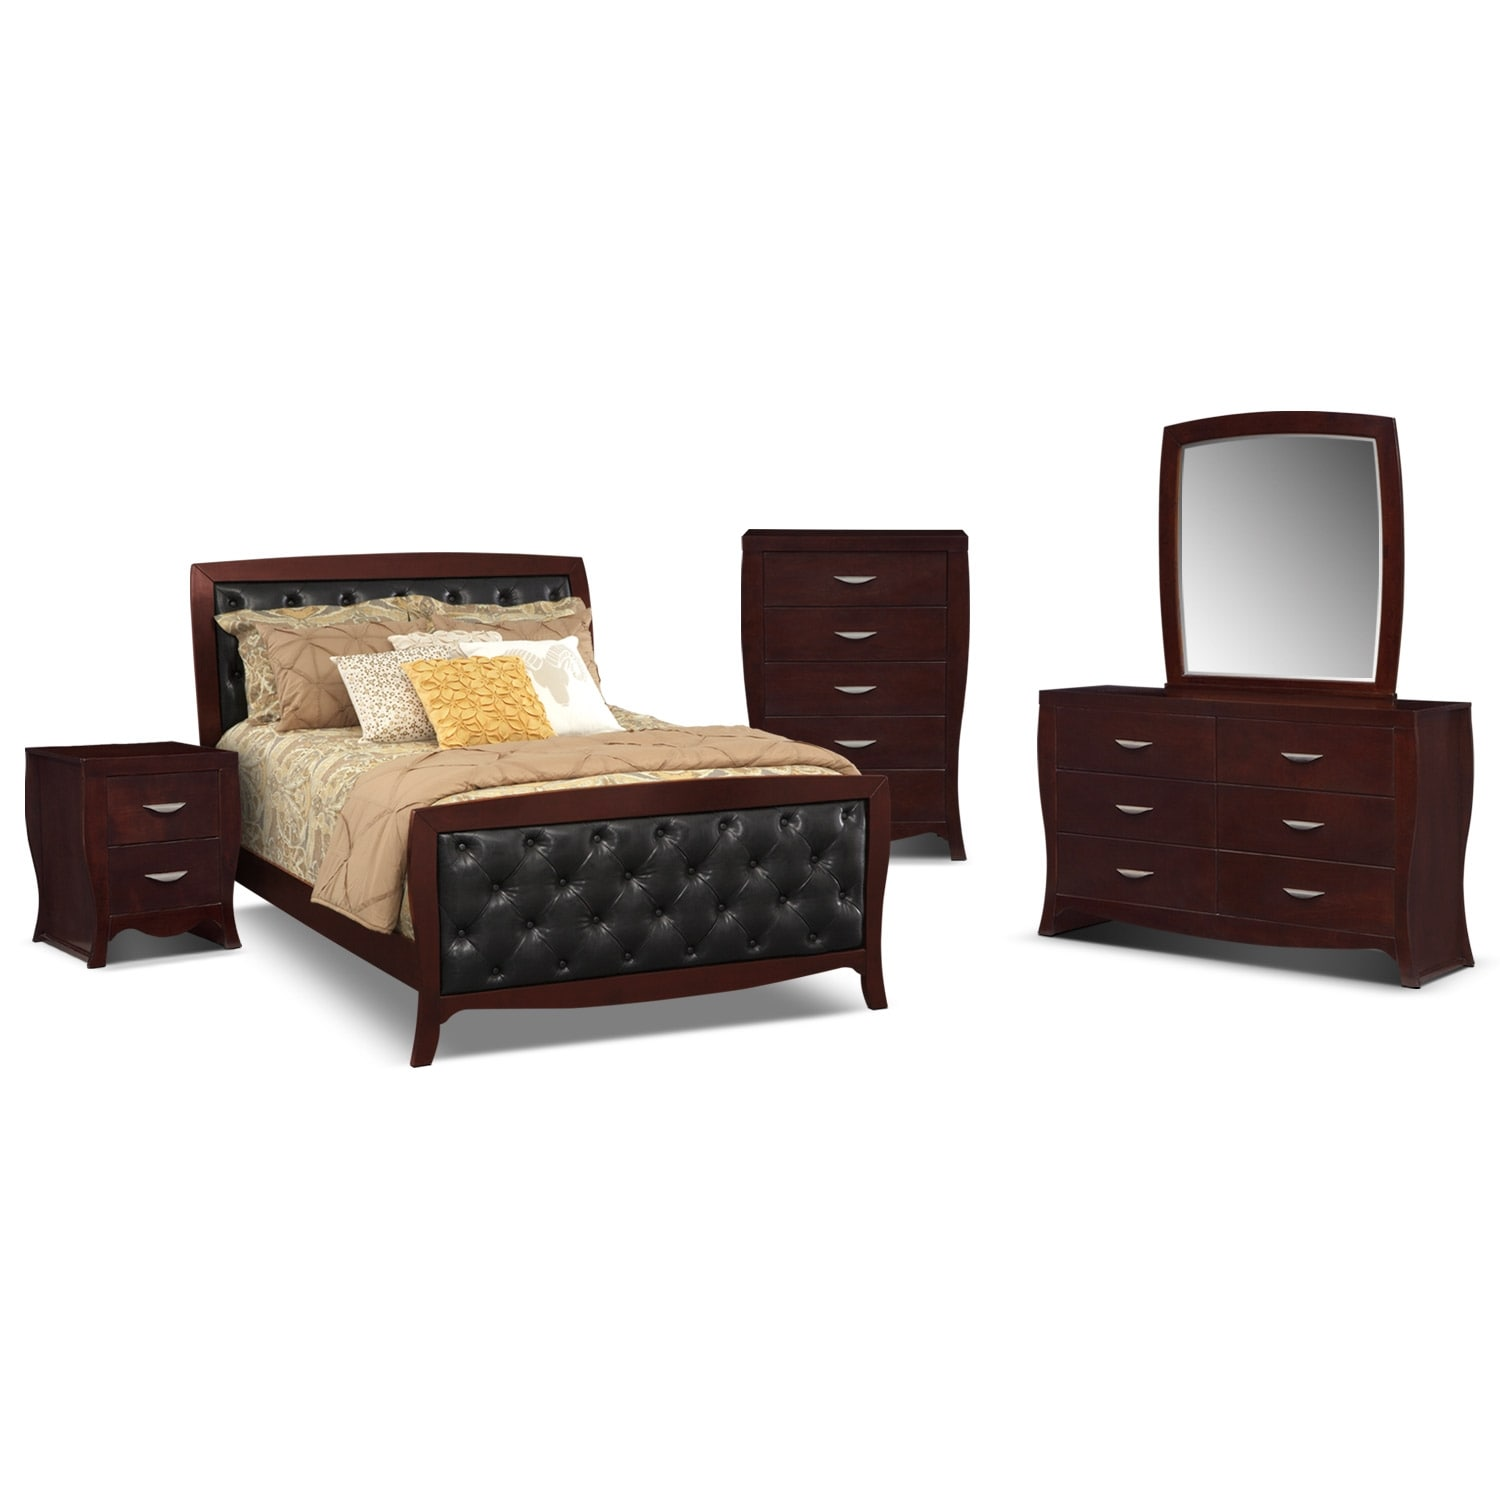 Bedroom Furniture - Jaden 7 Pc. Queen Bedroom